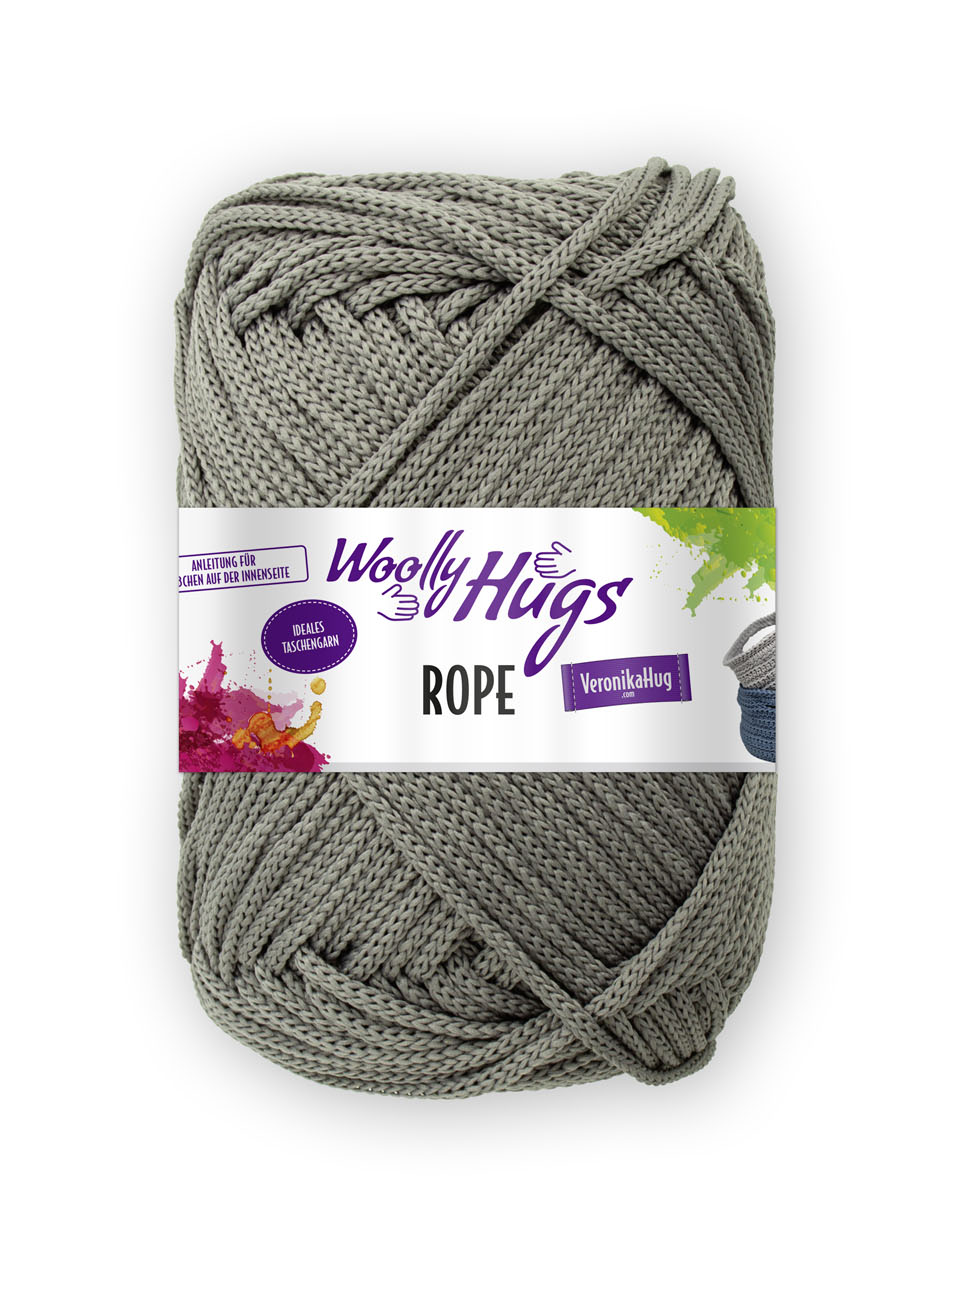 Woolly Hugs ROPE 200g 1kg (5x200g)